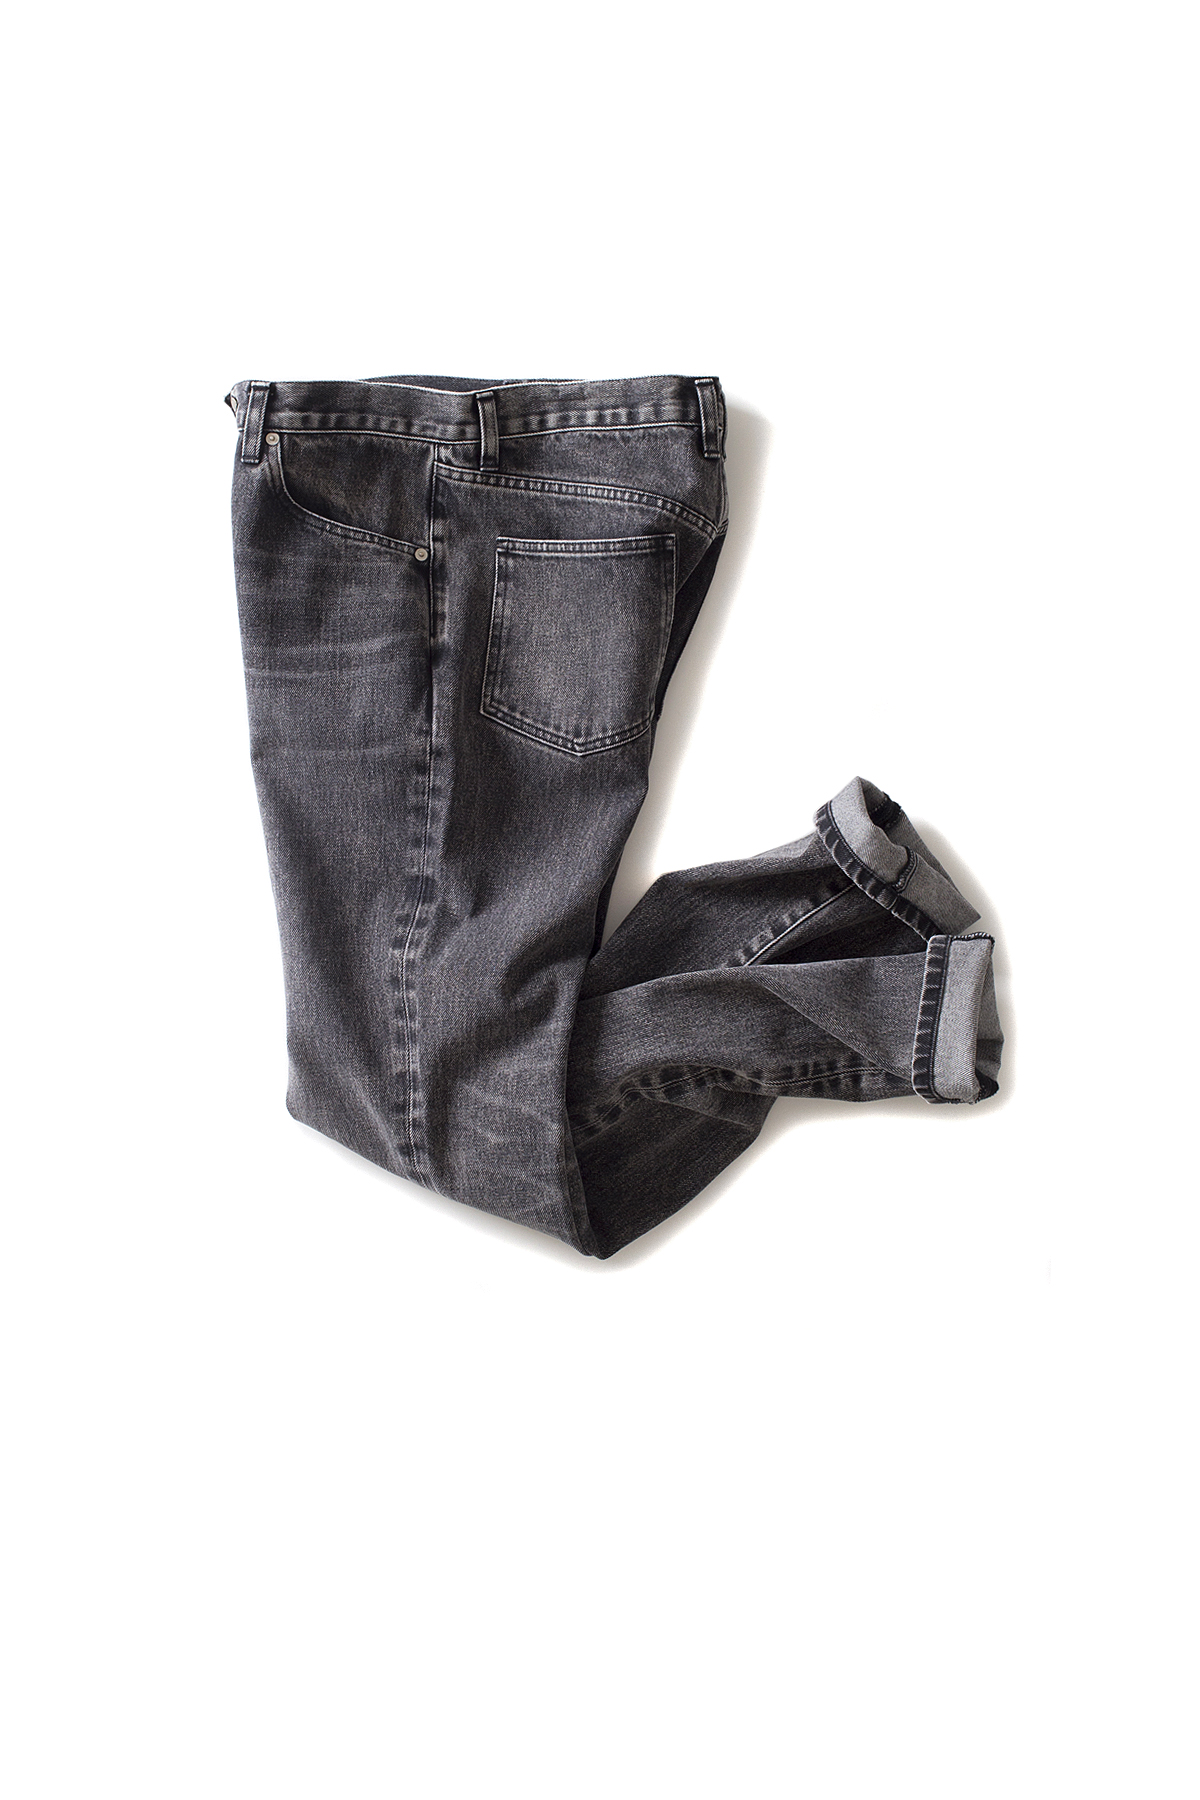 JOHN LAWRENCE SULLIVAN : Washed Straight Jeans (Black)